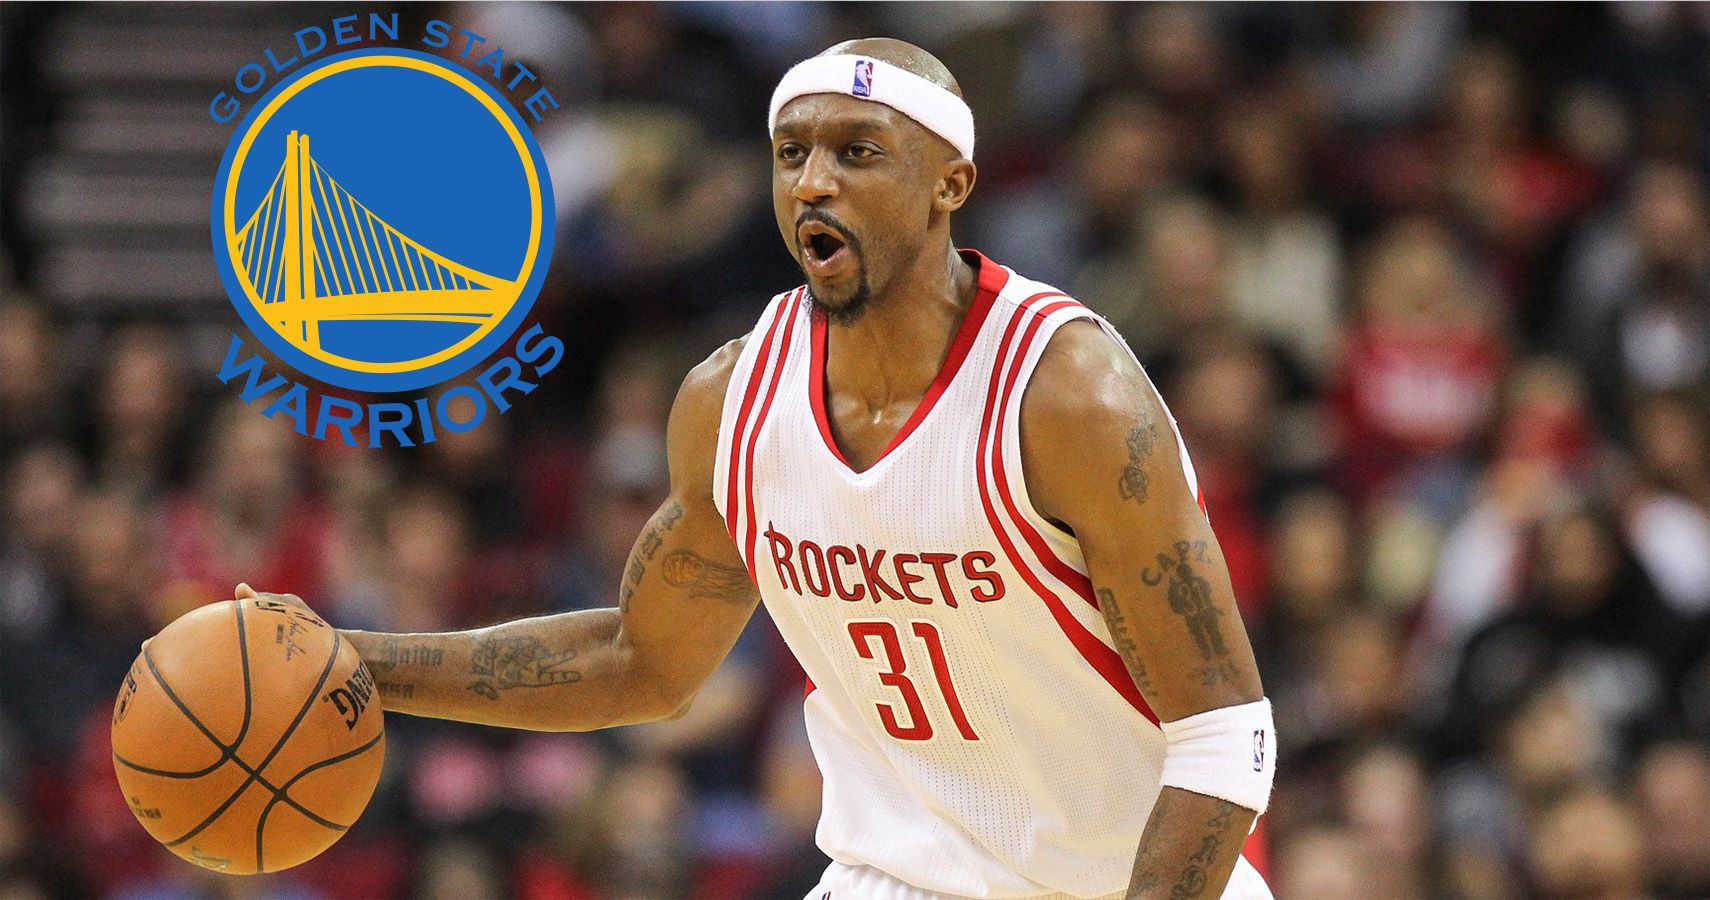 Top 15 Remaining NBA Free Agents and Where They Might Sign